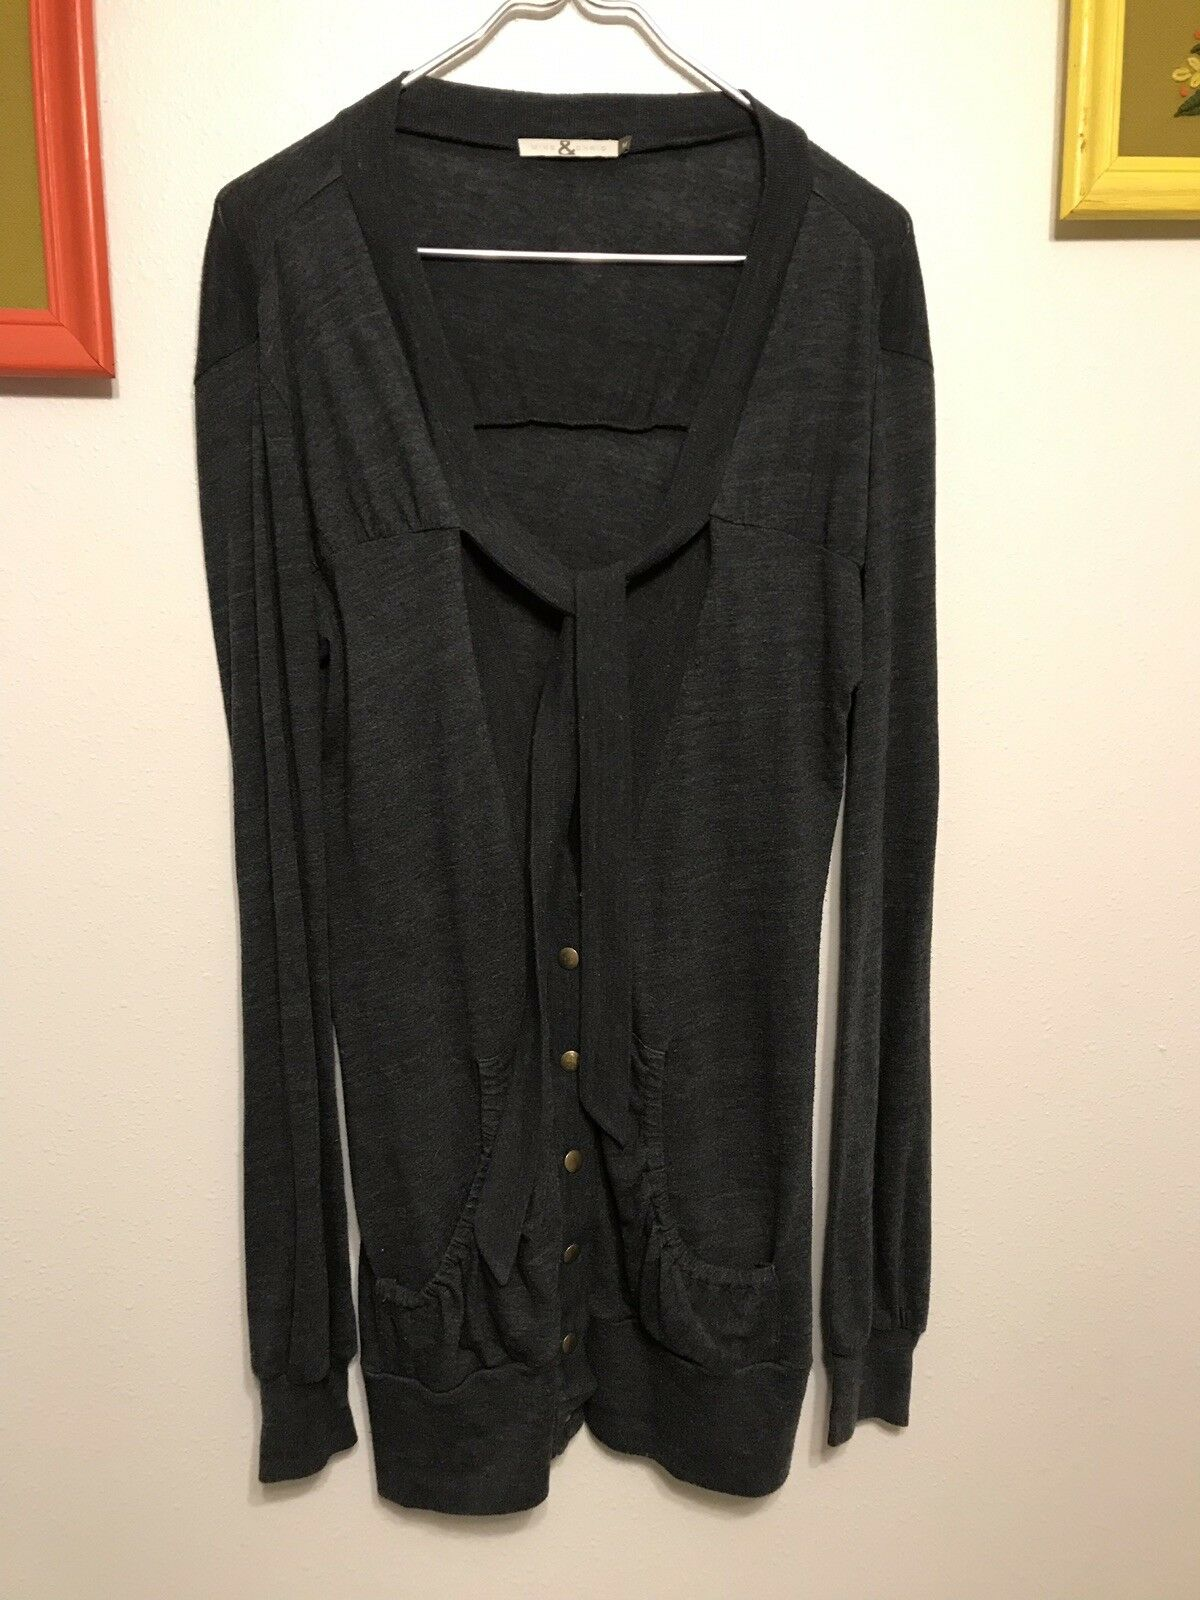 Mike & Chris Women's Sz Med Grey Long Sleeved Thin Cardigan Knit Sweater